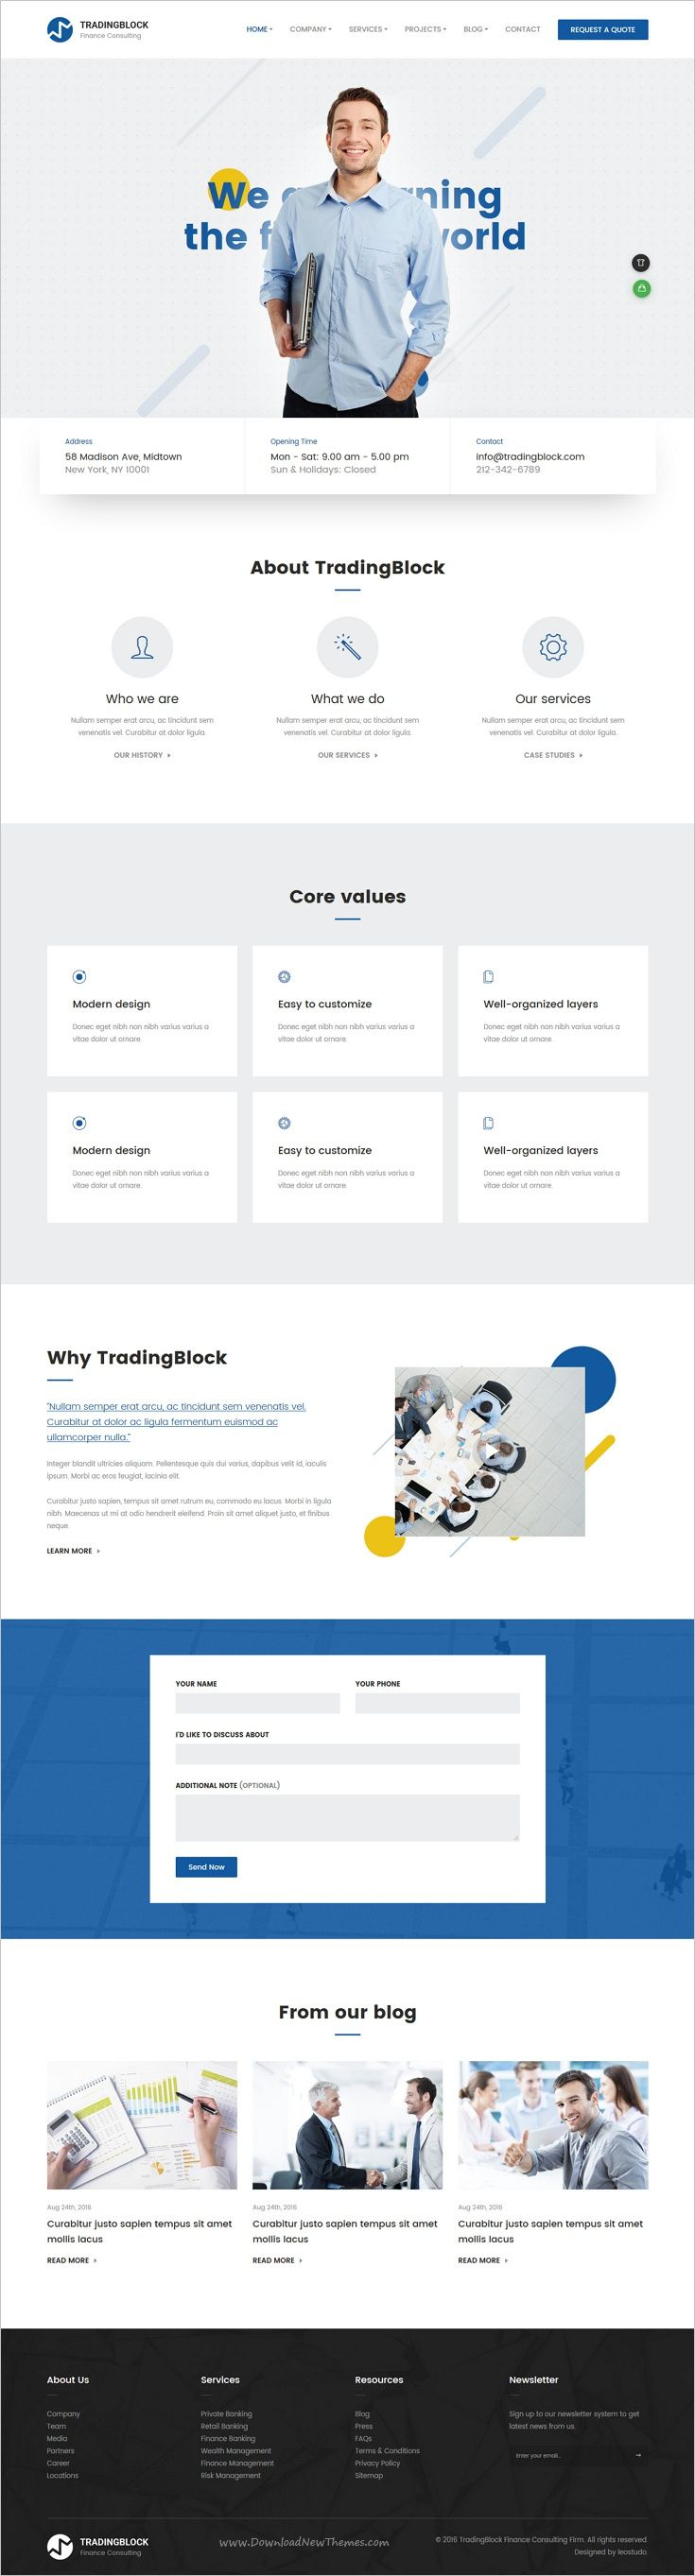 Tradingblock is a wonderful 8in1 responsive #Bootstrap template for financing, consulting, #accounting services & other related niches in the industry websites download now➩ https://themeforest.net/item/finance-business-html-responsive-template-tradingblock/18953353?ref=Datasata